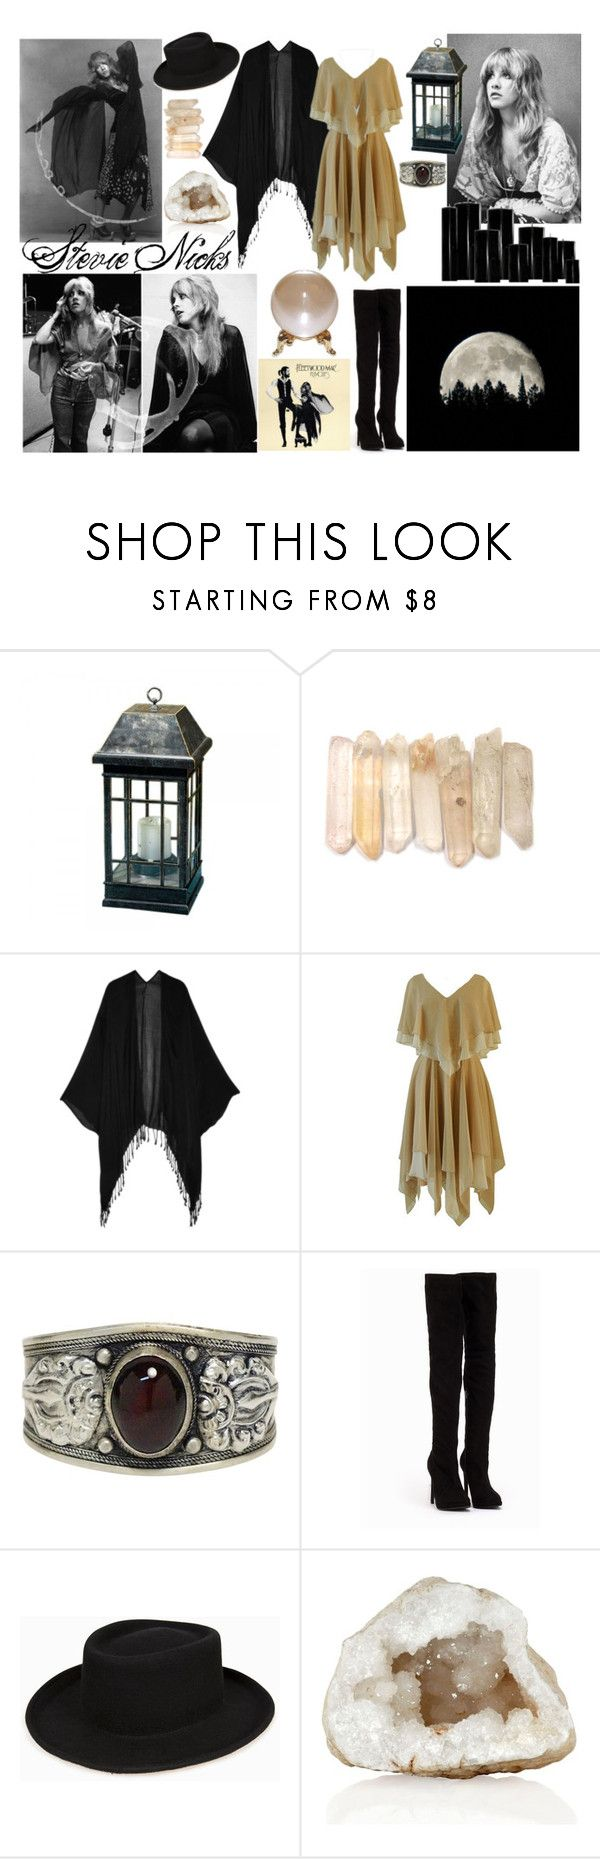 """""""Songs for the Witch Woman / / Stevie Nicks / / Tag"""" by magickofthelema ❤ liked on Polyvore featuring Tart, Nly Shoes, witch, kimono, stevienicks and witchy"""